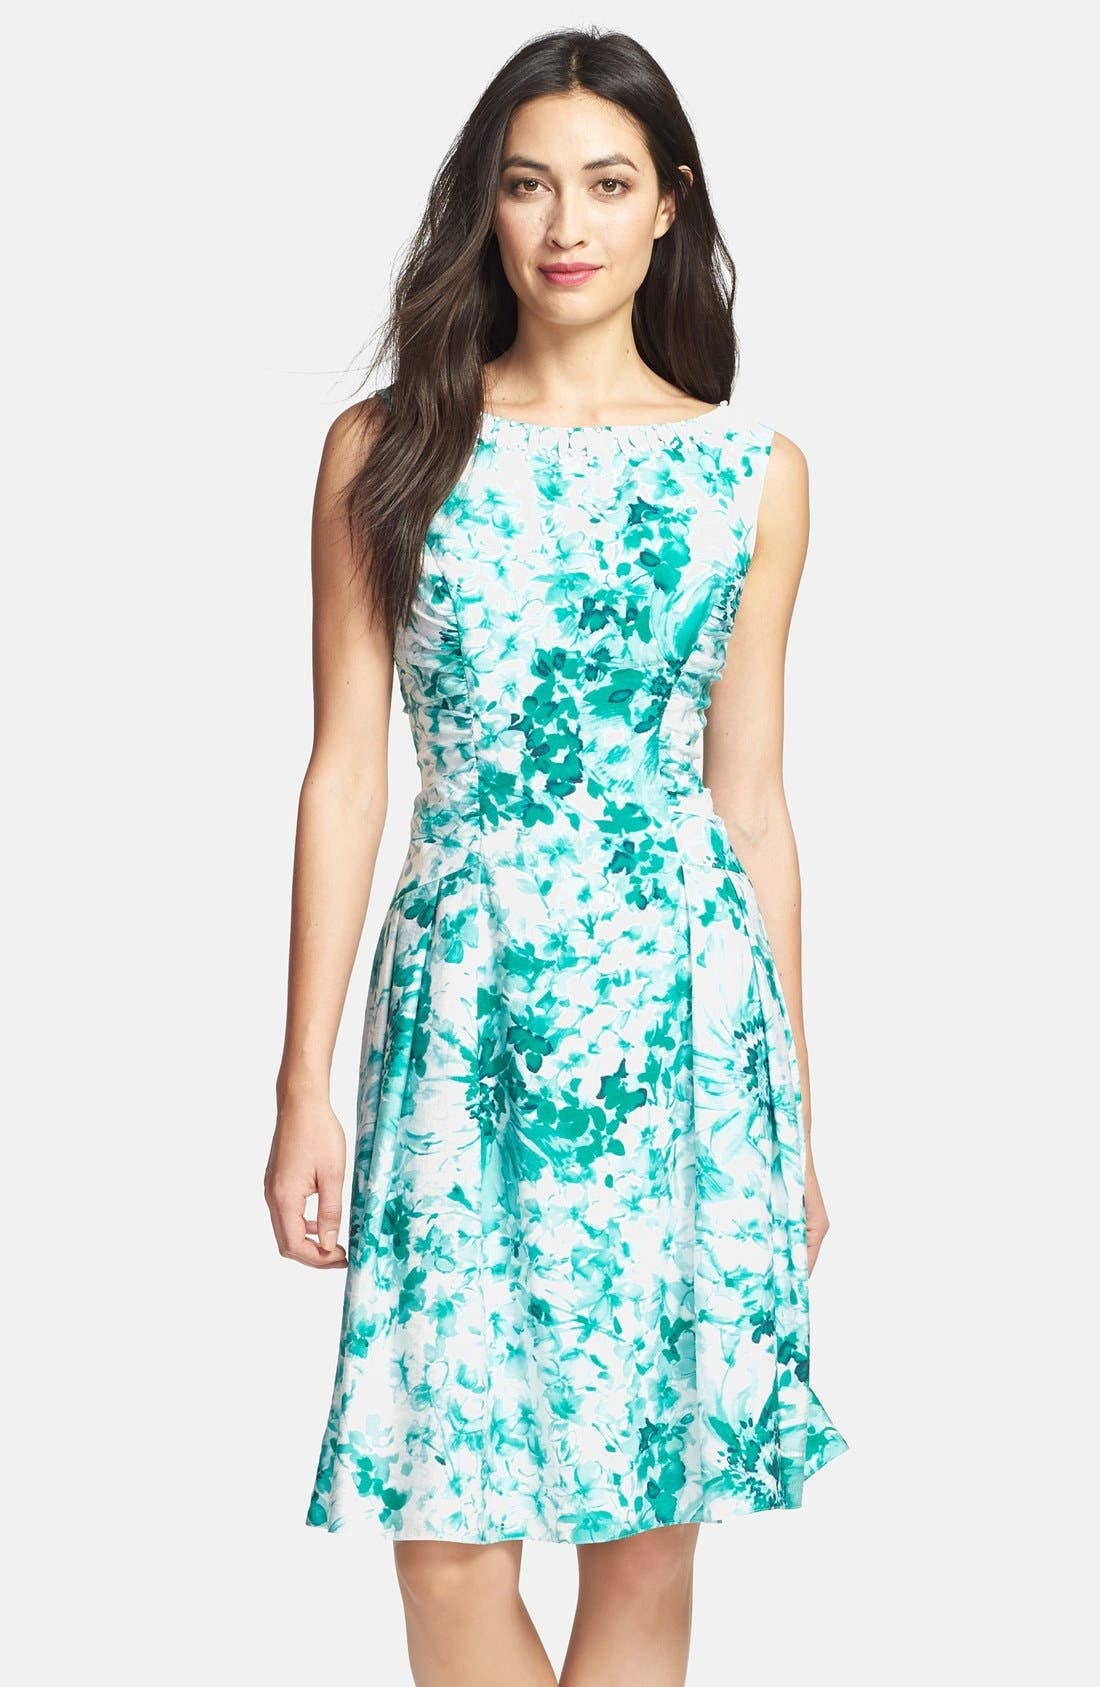 Alternate Image 1 Selected - Adrianna Papell Beaded Neck Floral Print Fit & Flare Dress